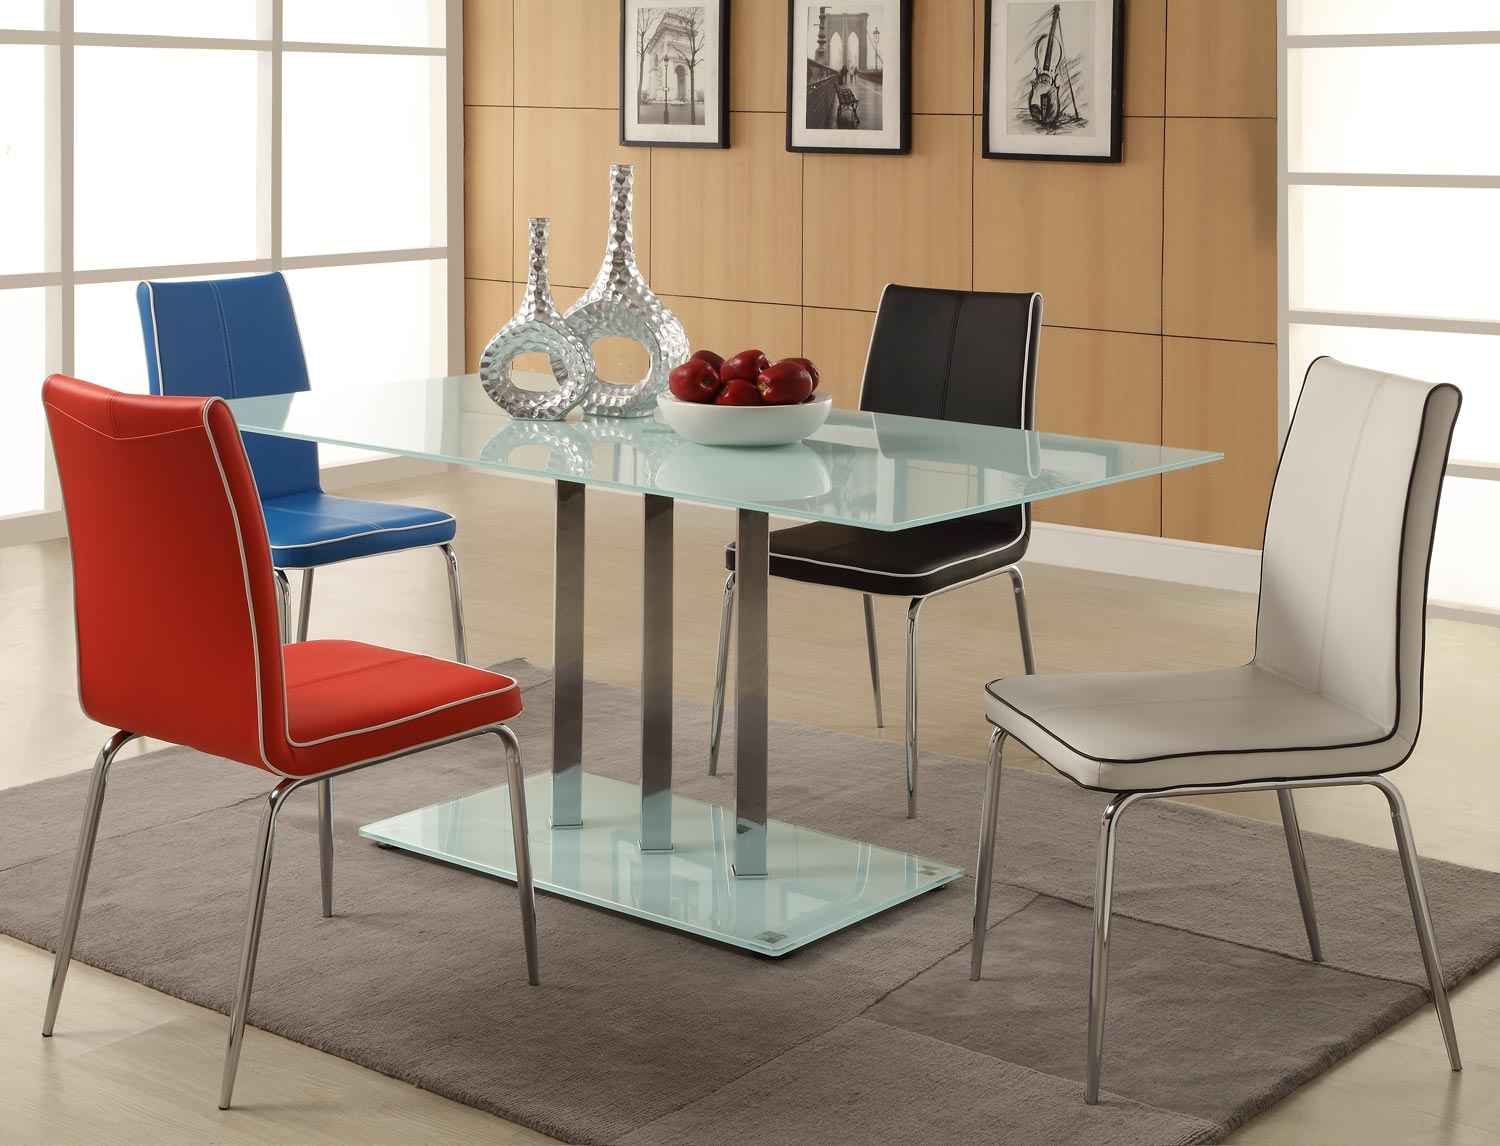 Homelegance Goran Glass Top Dining Set 2 - Frosted Glass/Chrome